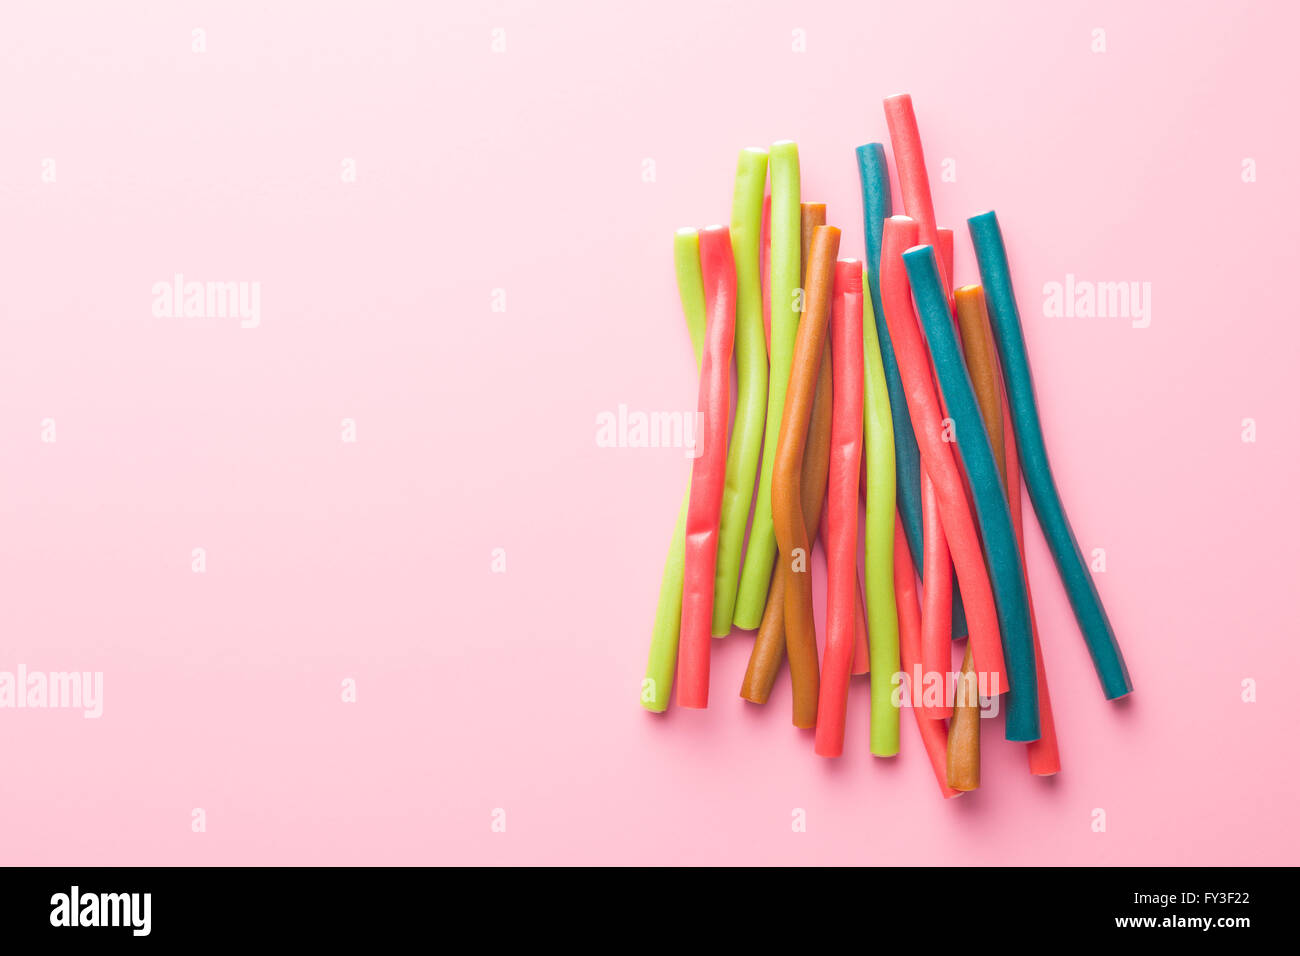 Sweet gummy sticks with different flavor. Top view of tasty candy on pink background. - Stock Image